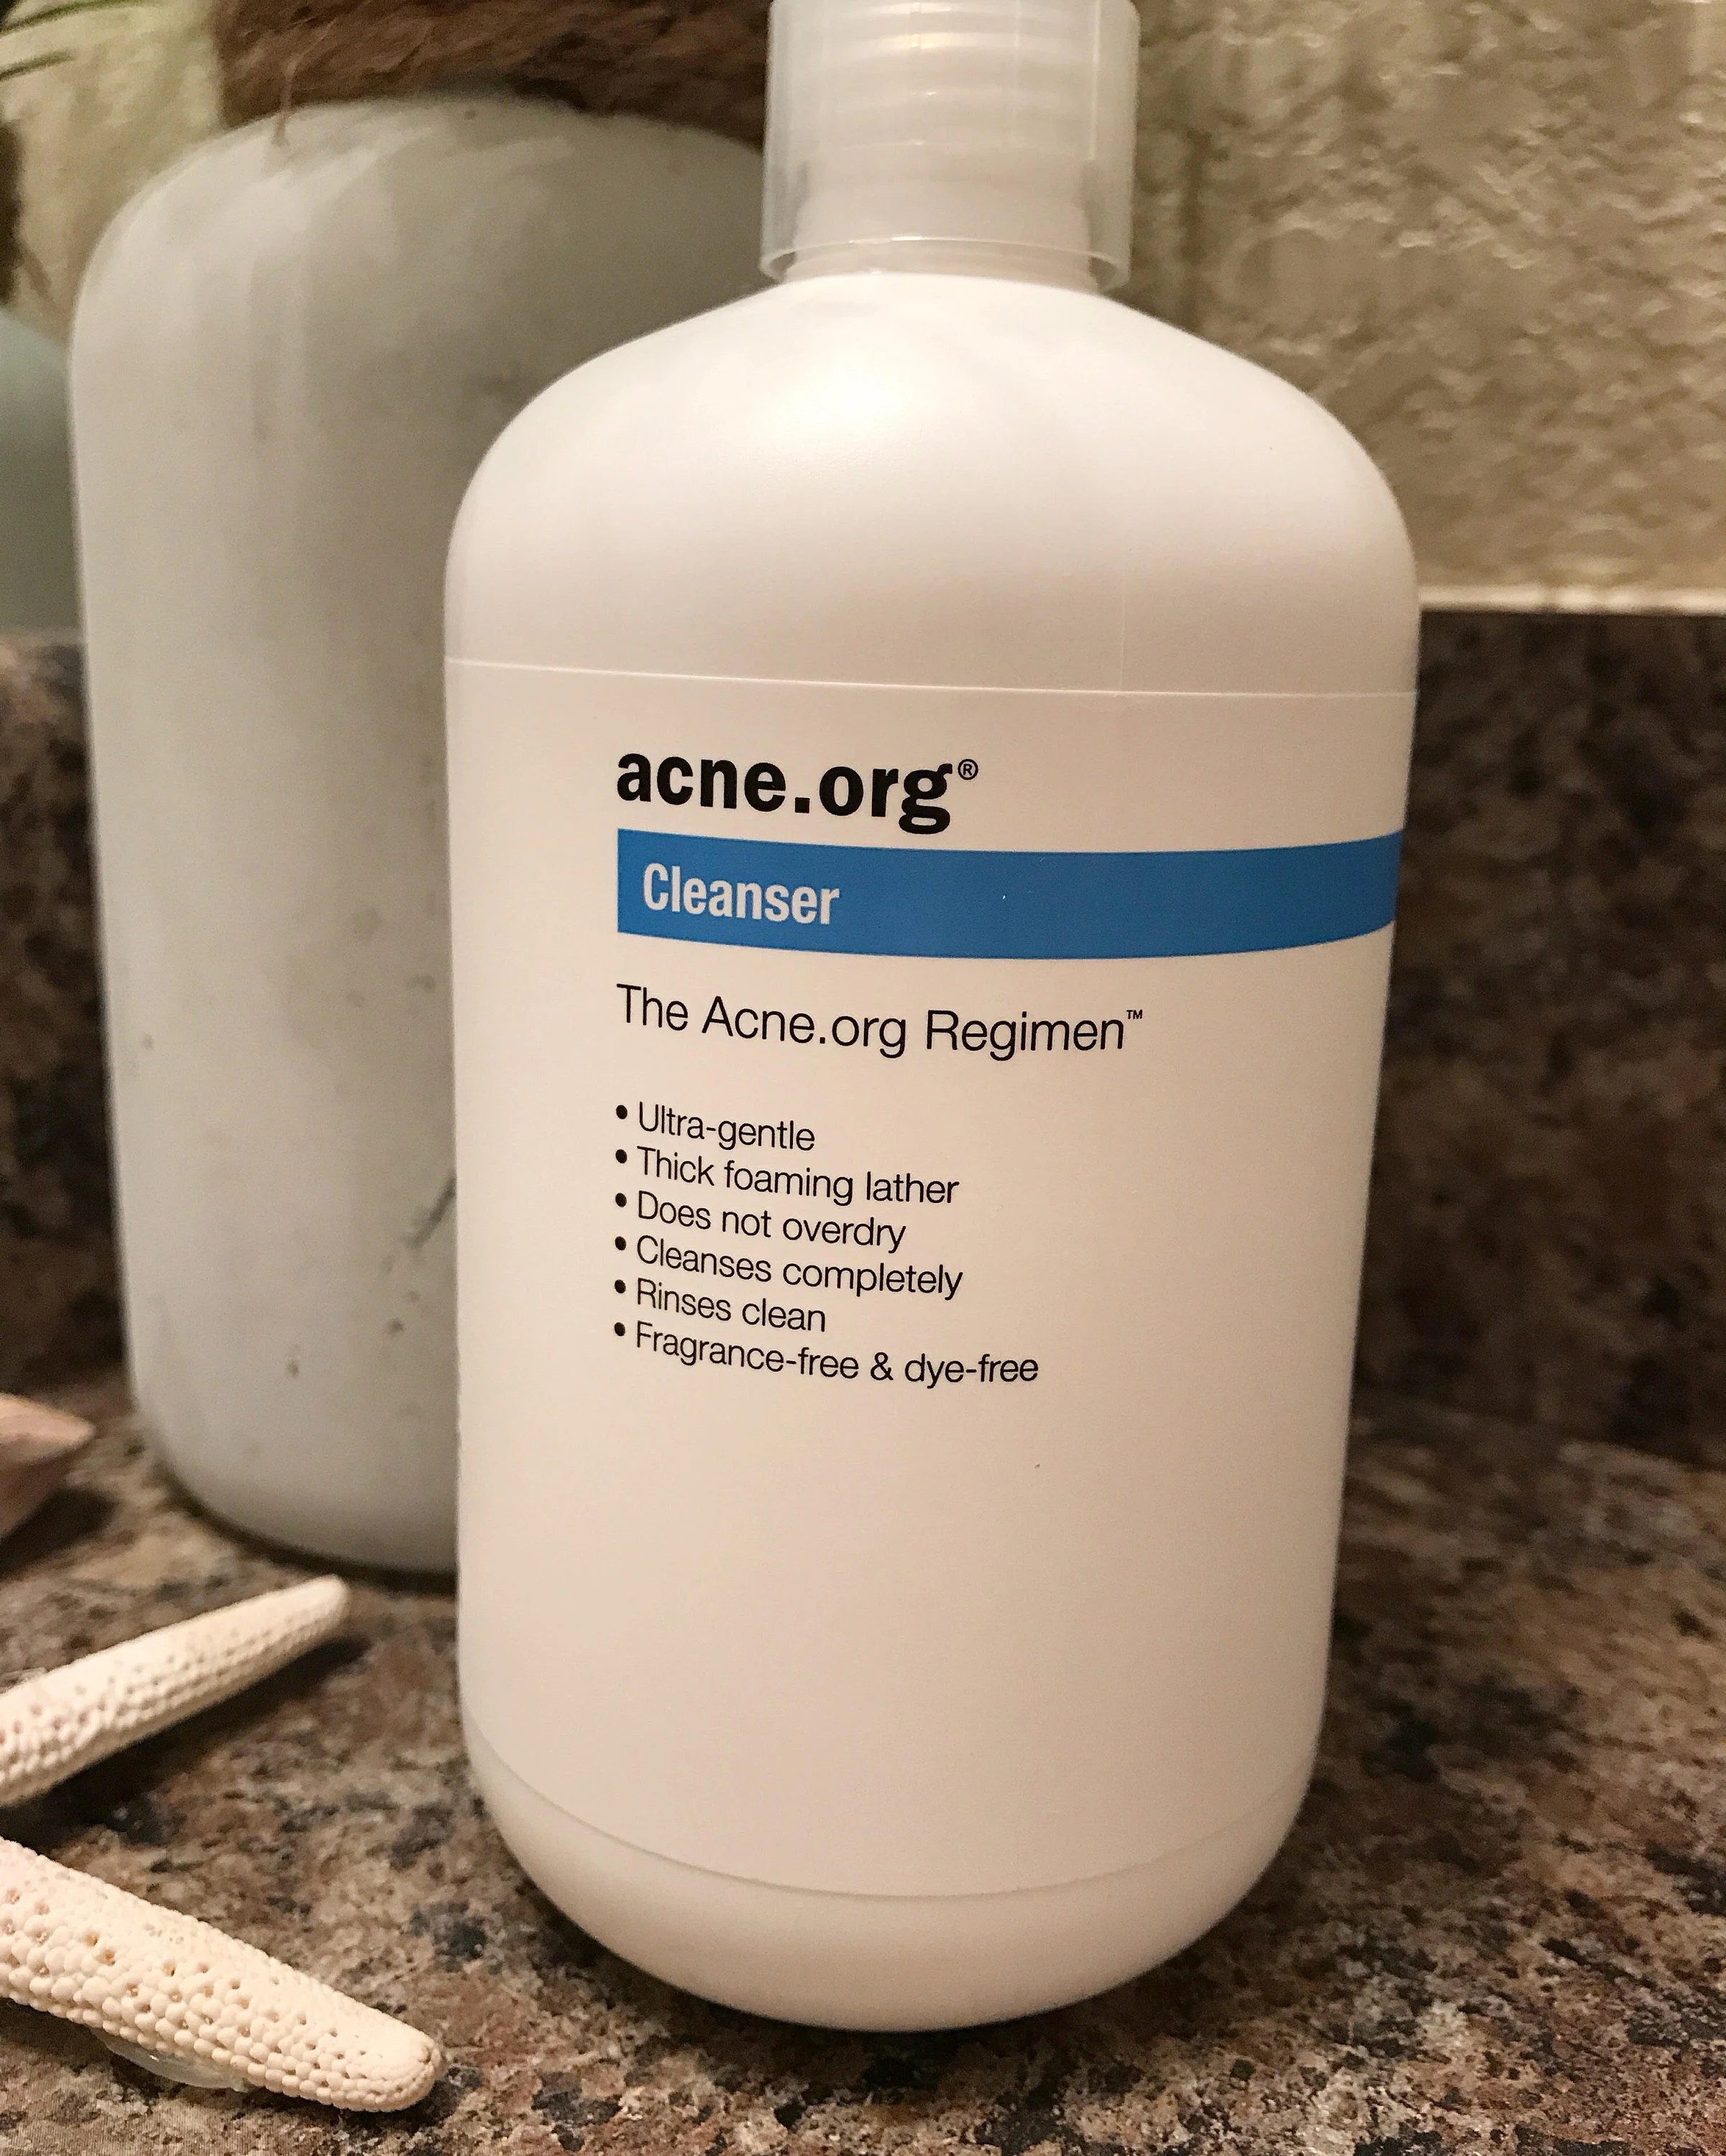 The Holy Grail Acne Healing Products  The benzoyl peroxide makes my face feel so amazingly smooth  It feels like  the best make up primer  and sometimes in the mornings I will skip my  moisturizer